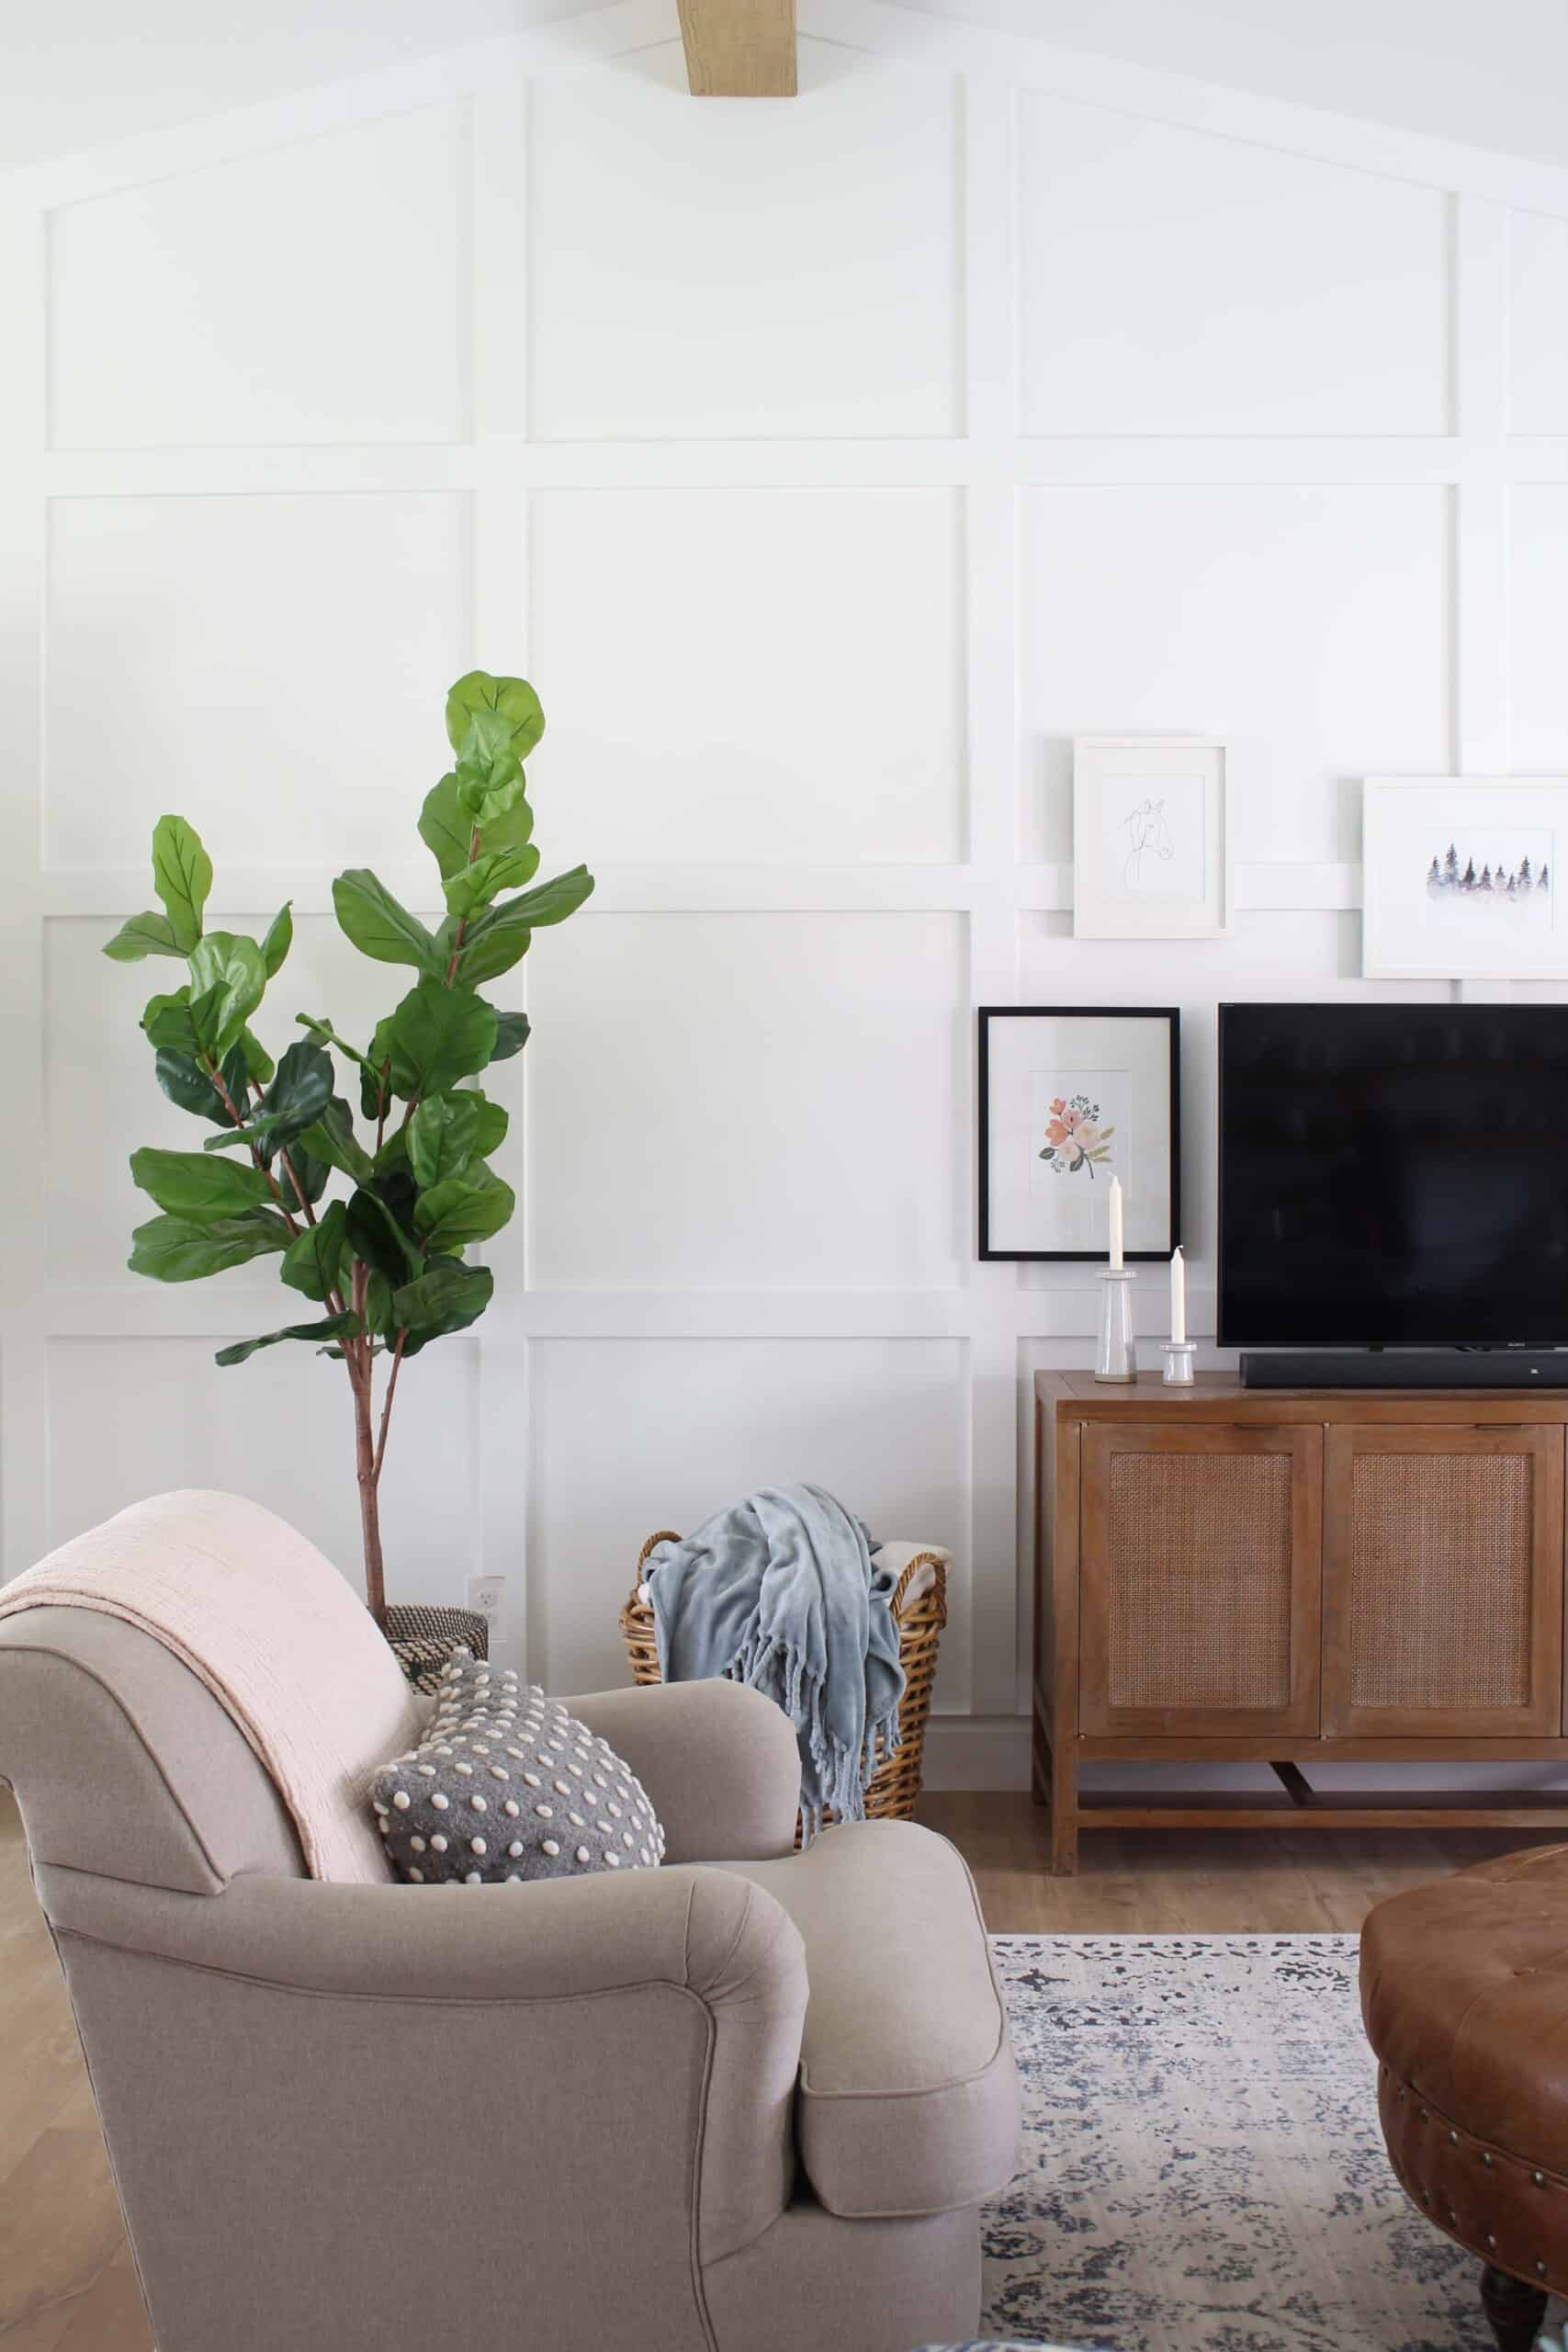 white walls with moulding on them